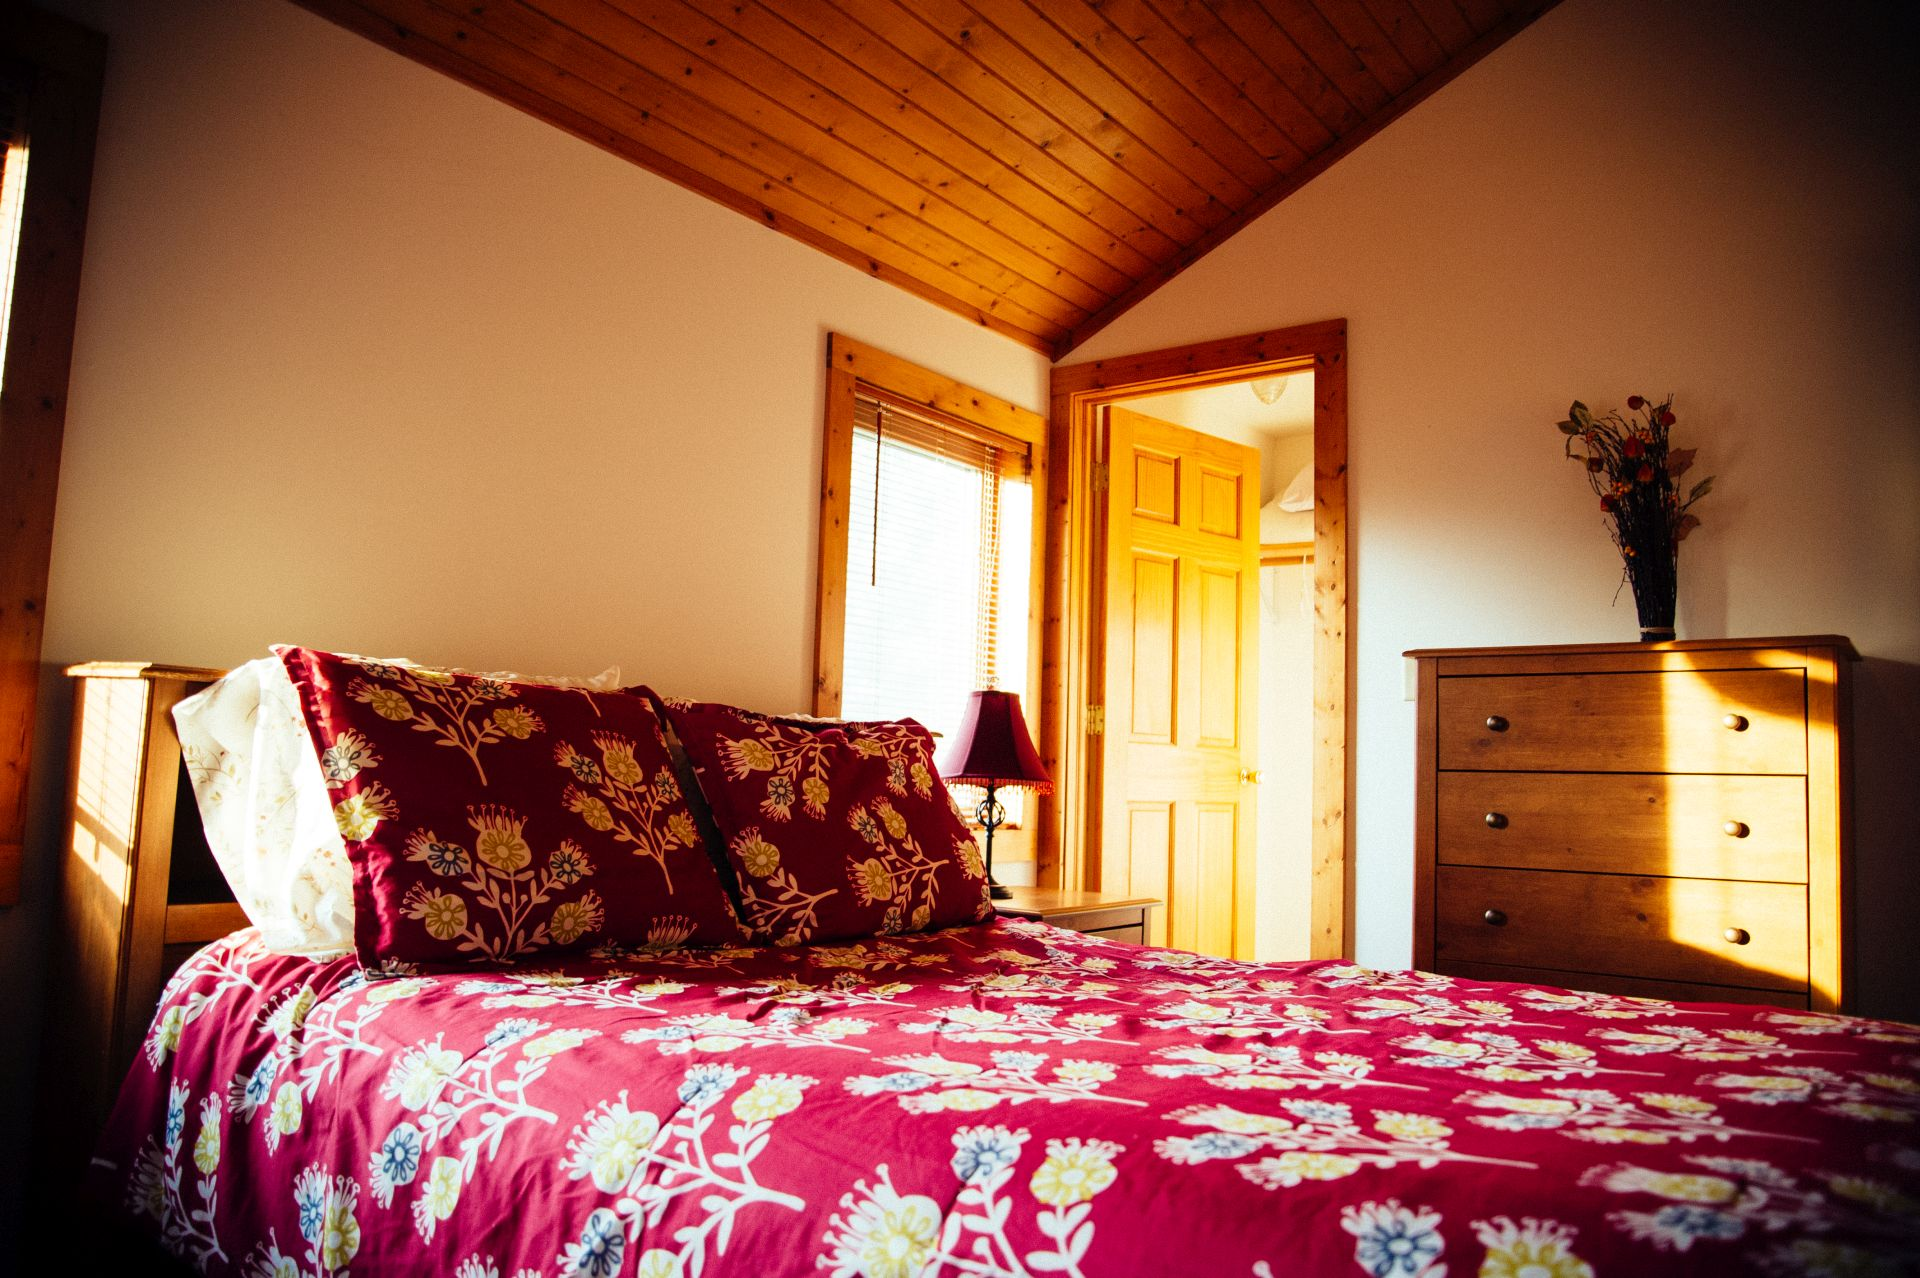 The bedroom with the king size bed from Zen Getaway Cabin